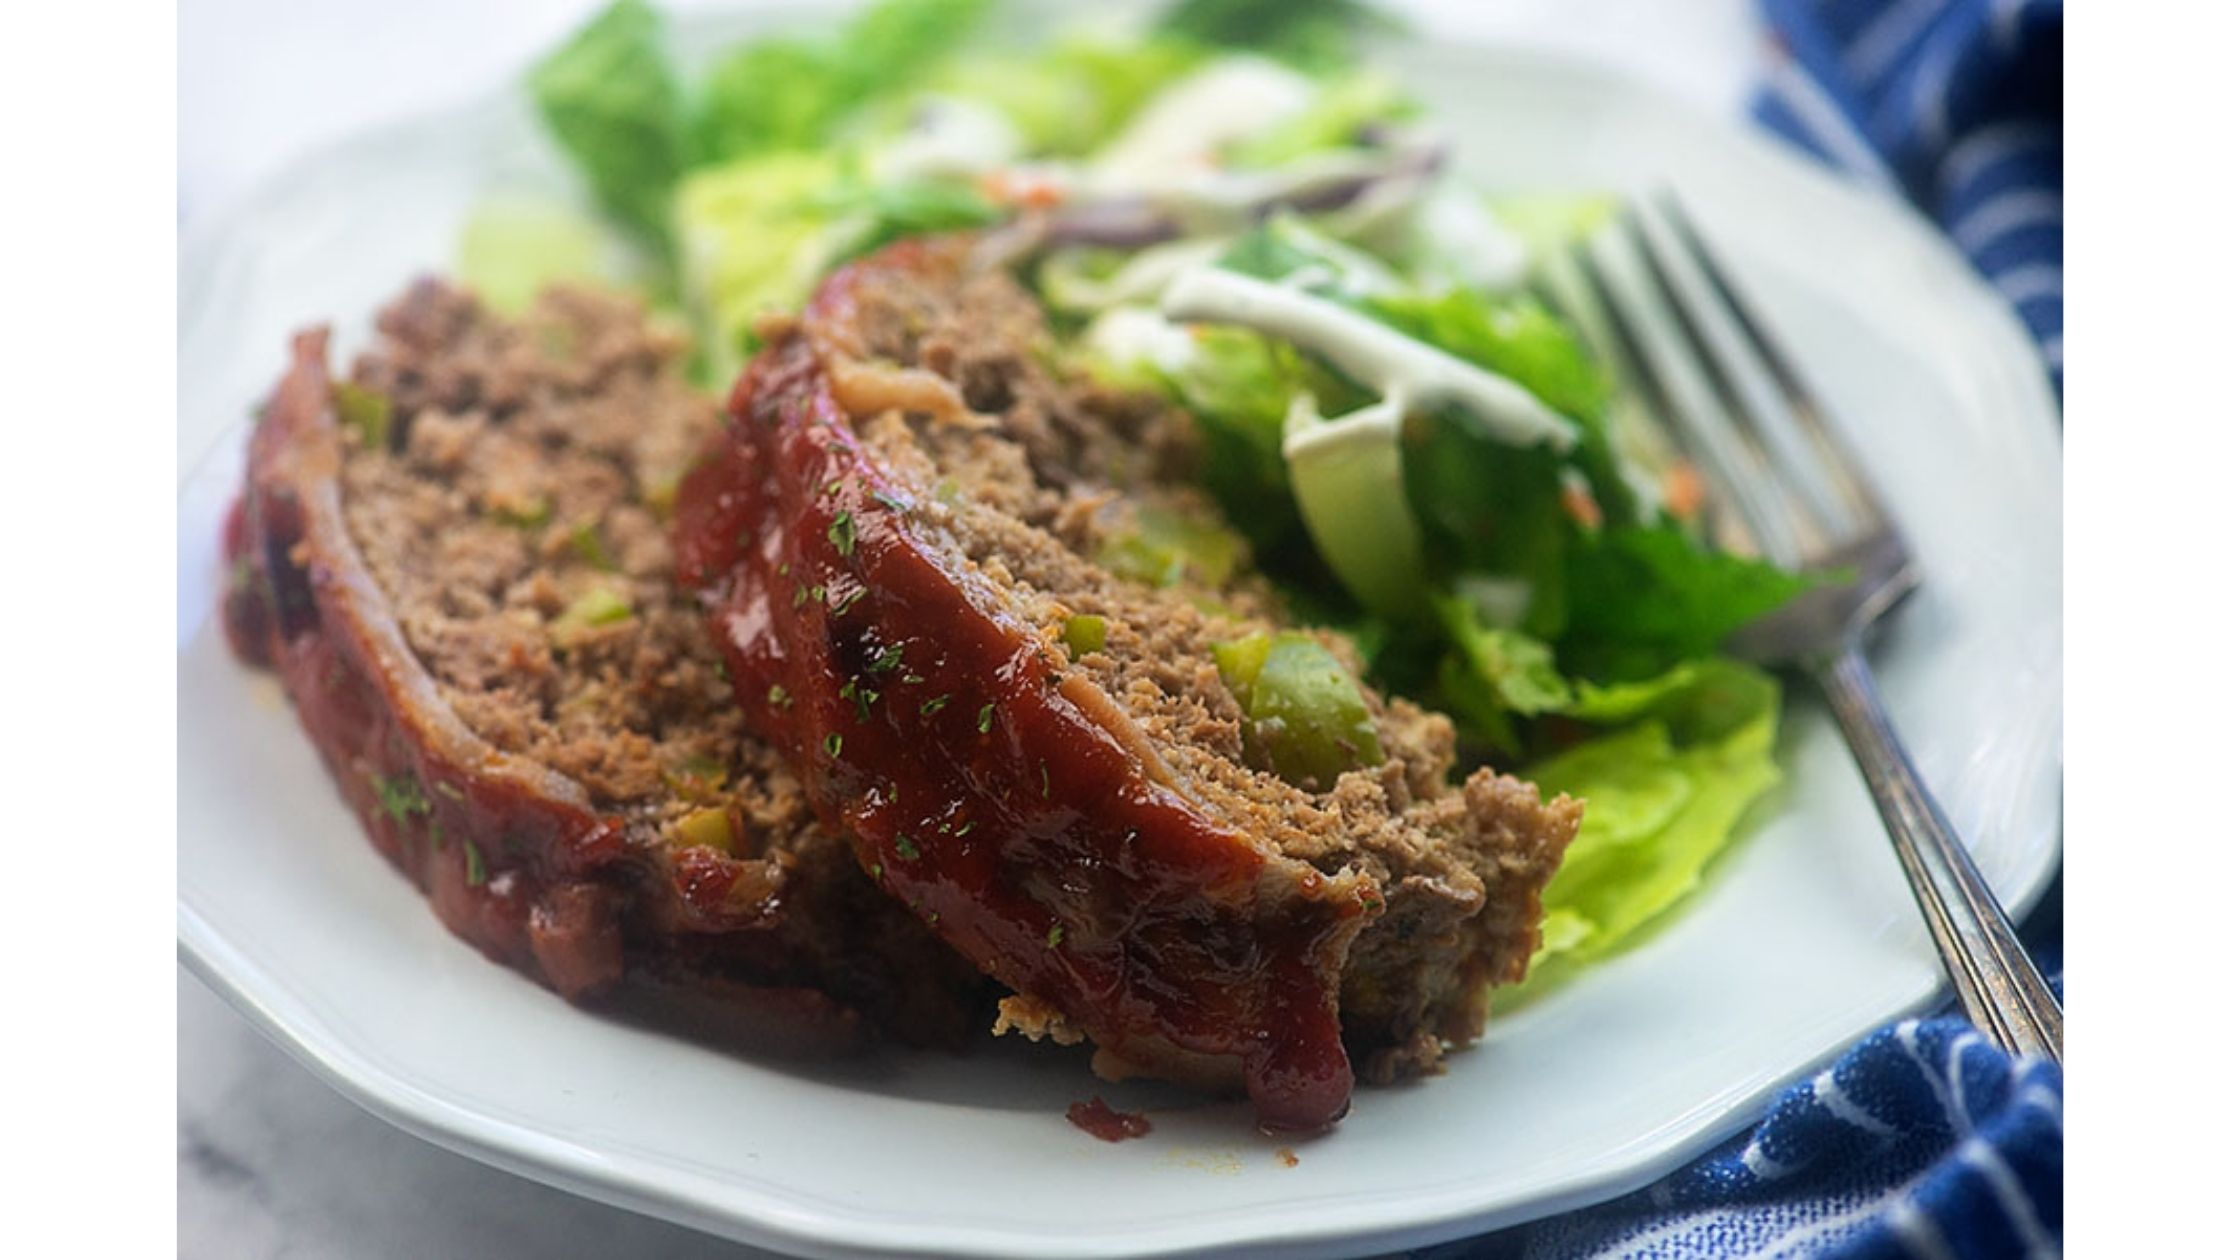 Low carb meatloaf recipe by The Low Carb Life